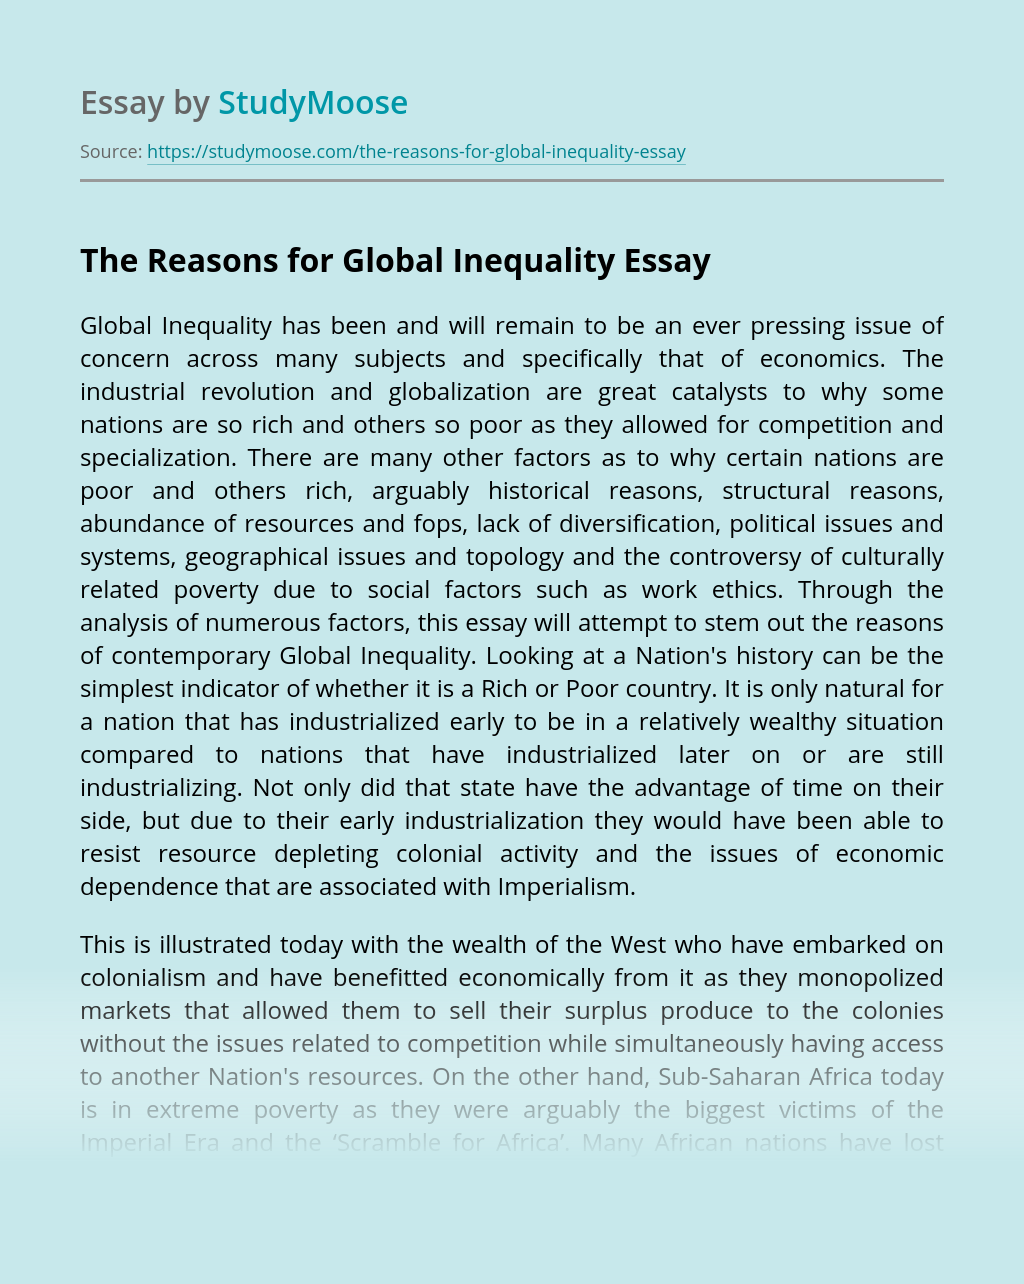 The Reasons for Global Inequality